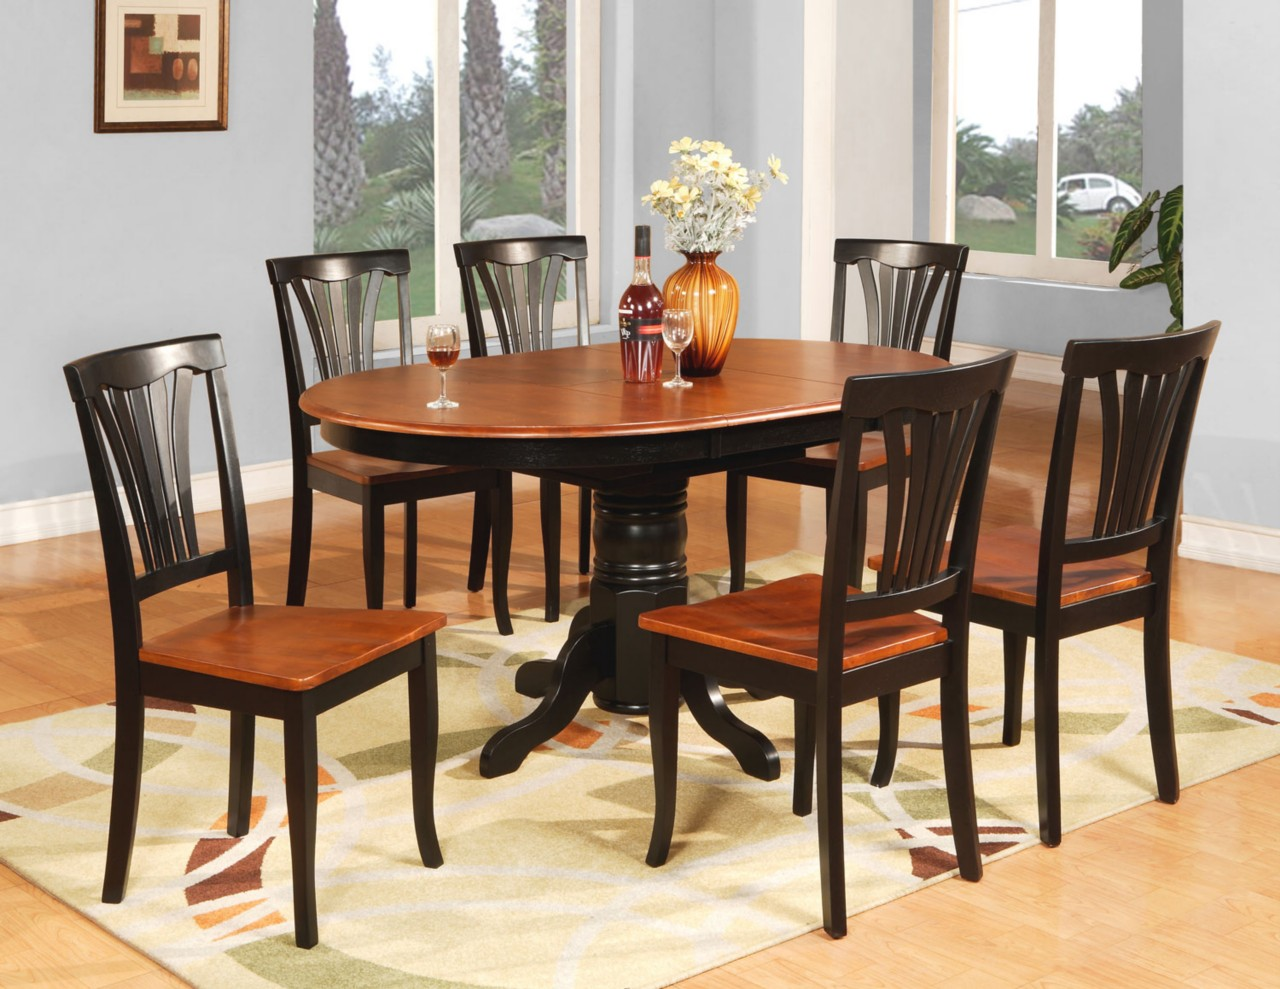 7 pc oval dinette kitchen dining room table 6 chairs ebay for Dining set with bench and chairs